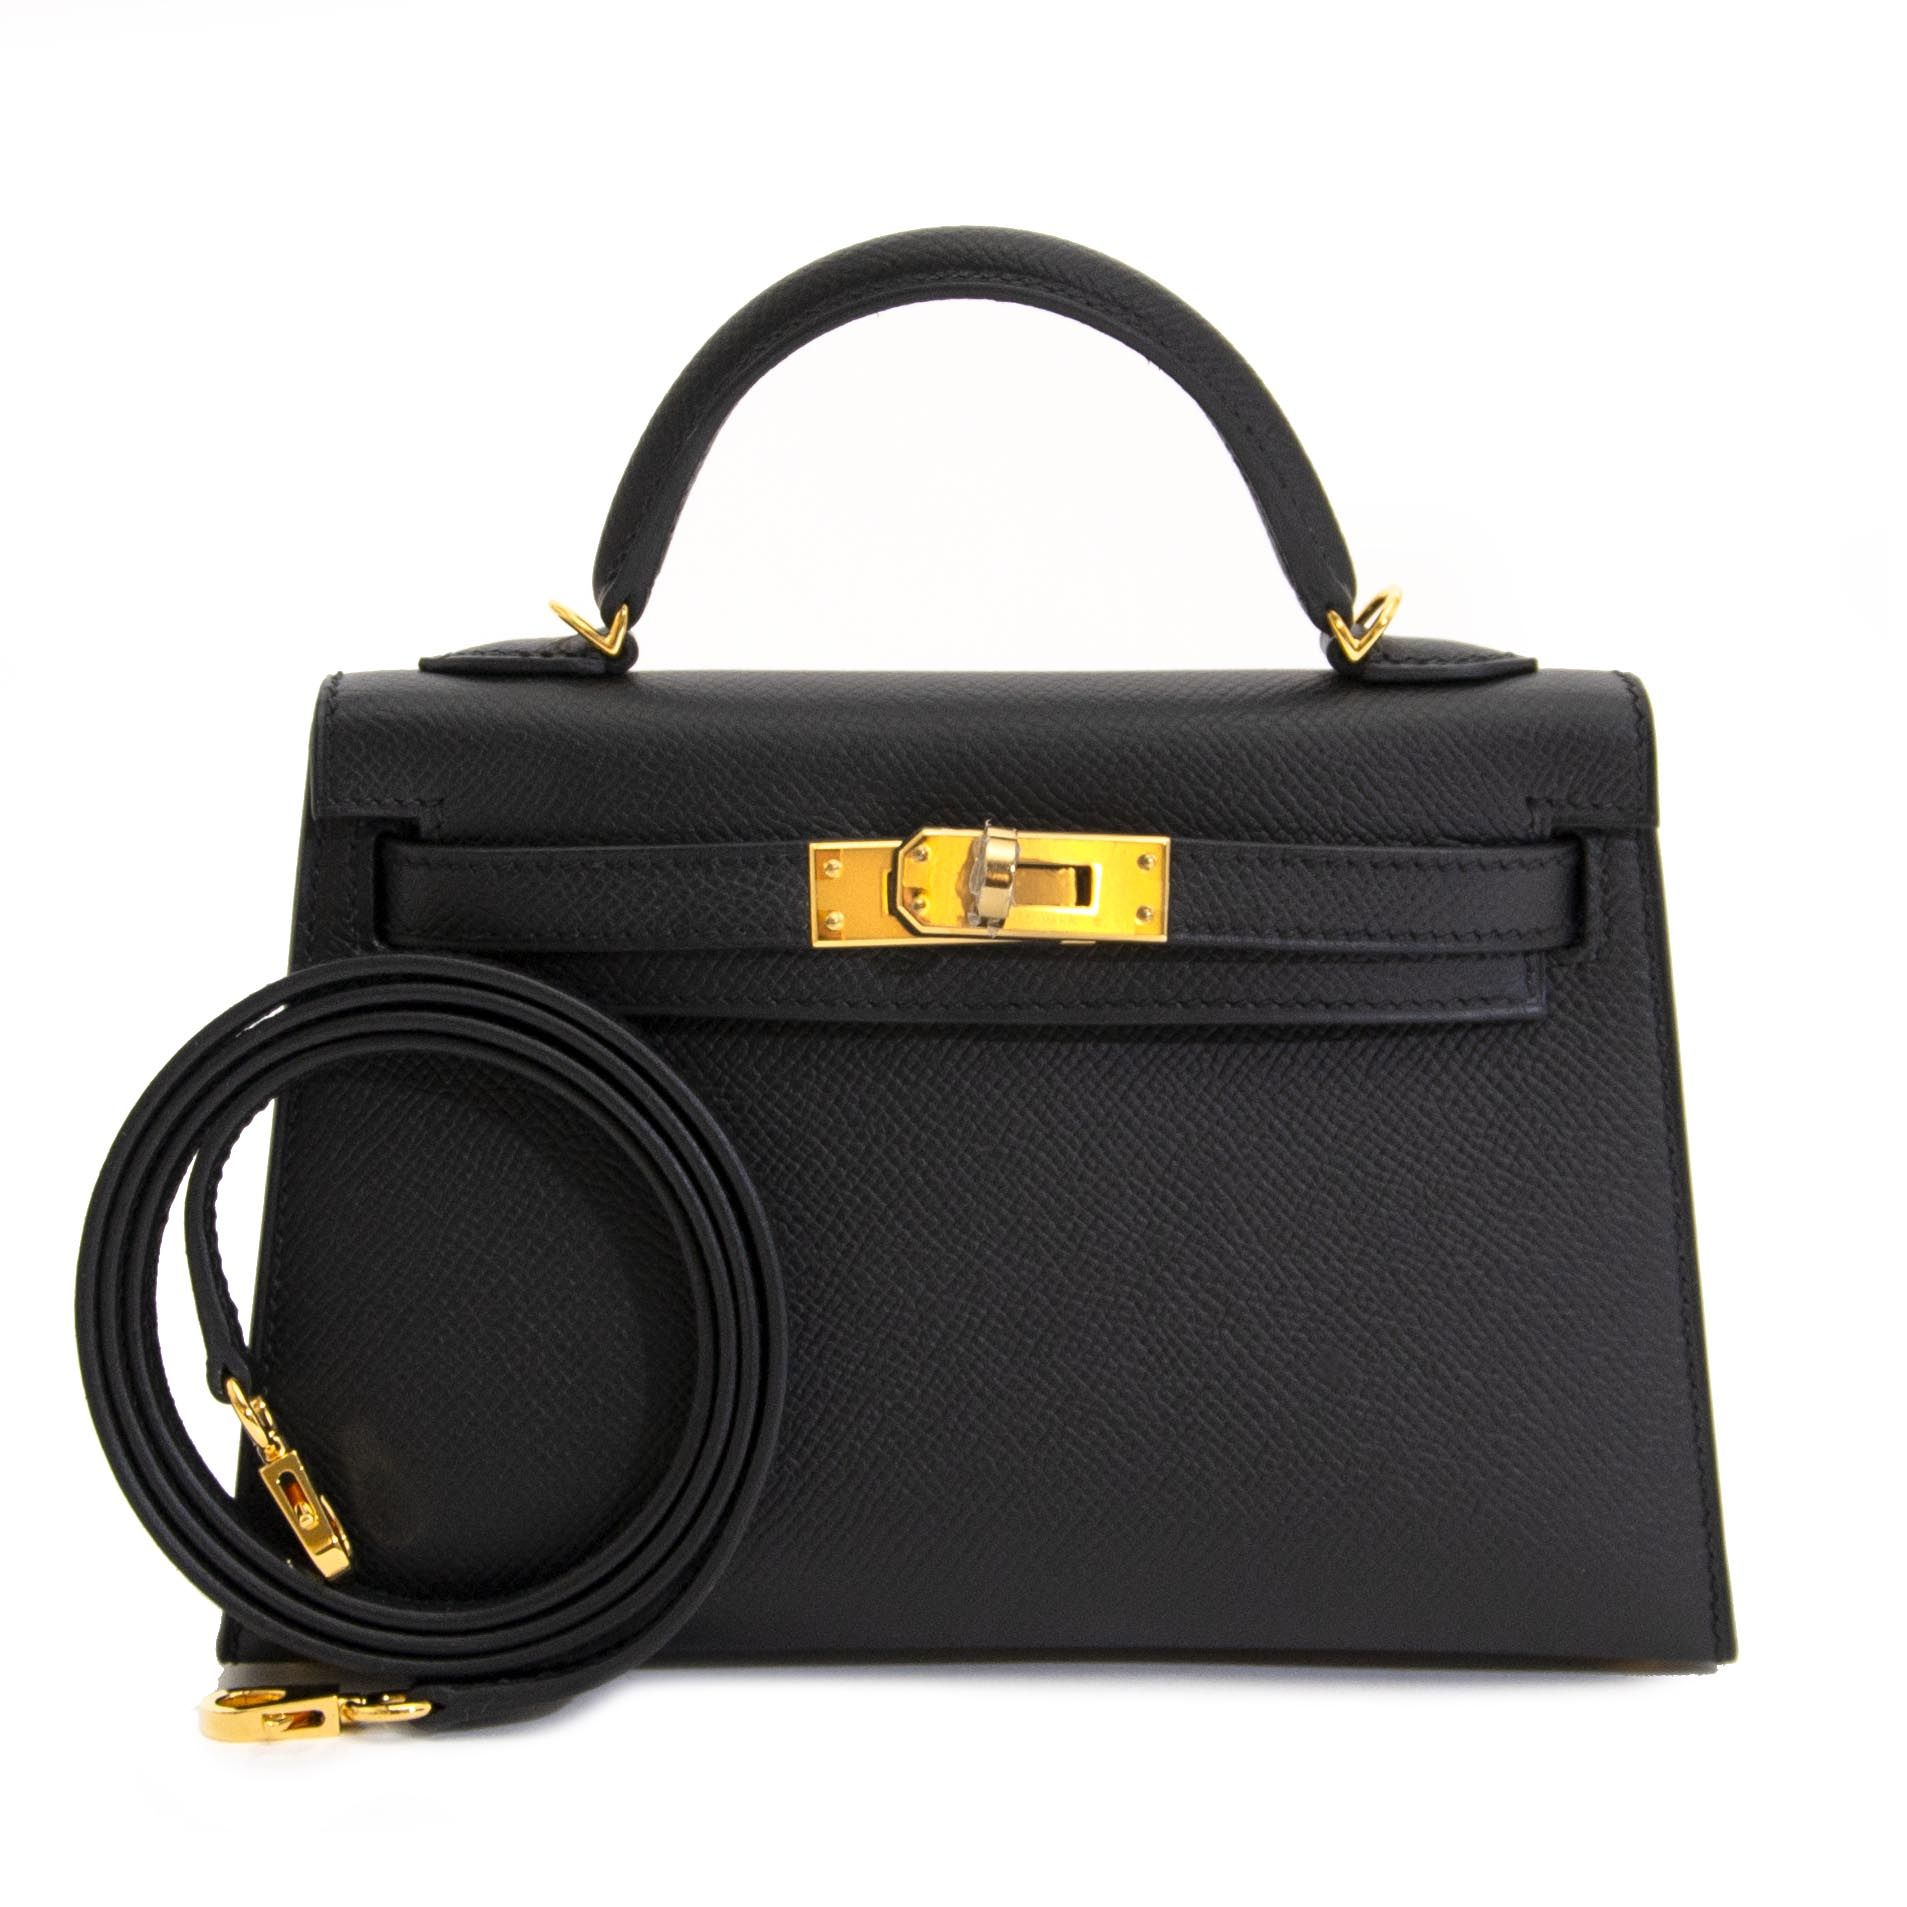 1b22f80ceef2 NEVER USED* Hermes Kelly Mini II 20cm Black Epsom GHW | Shop ...